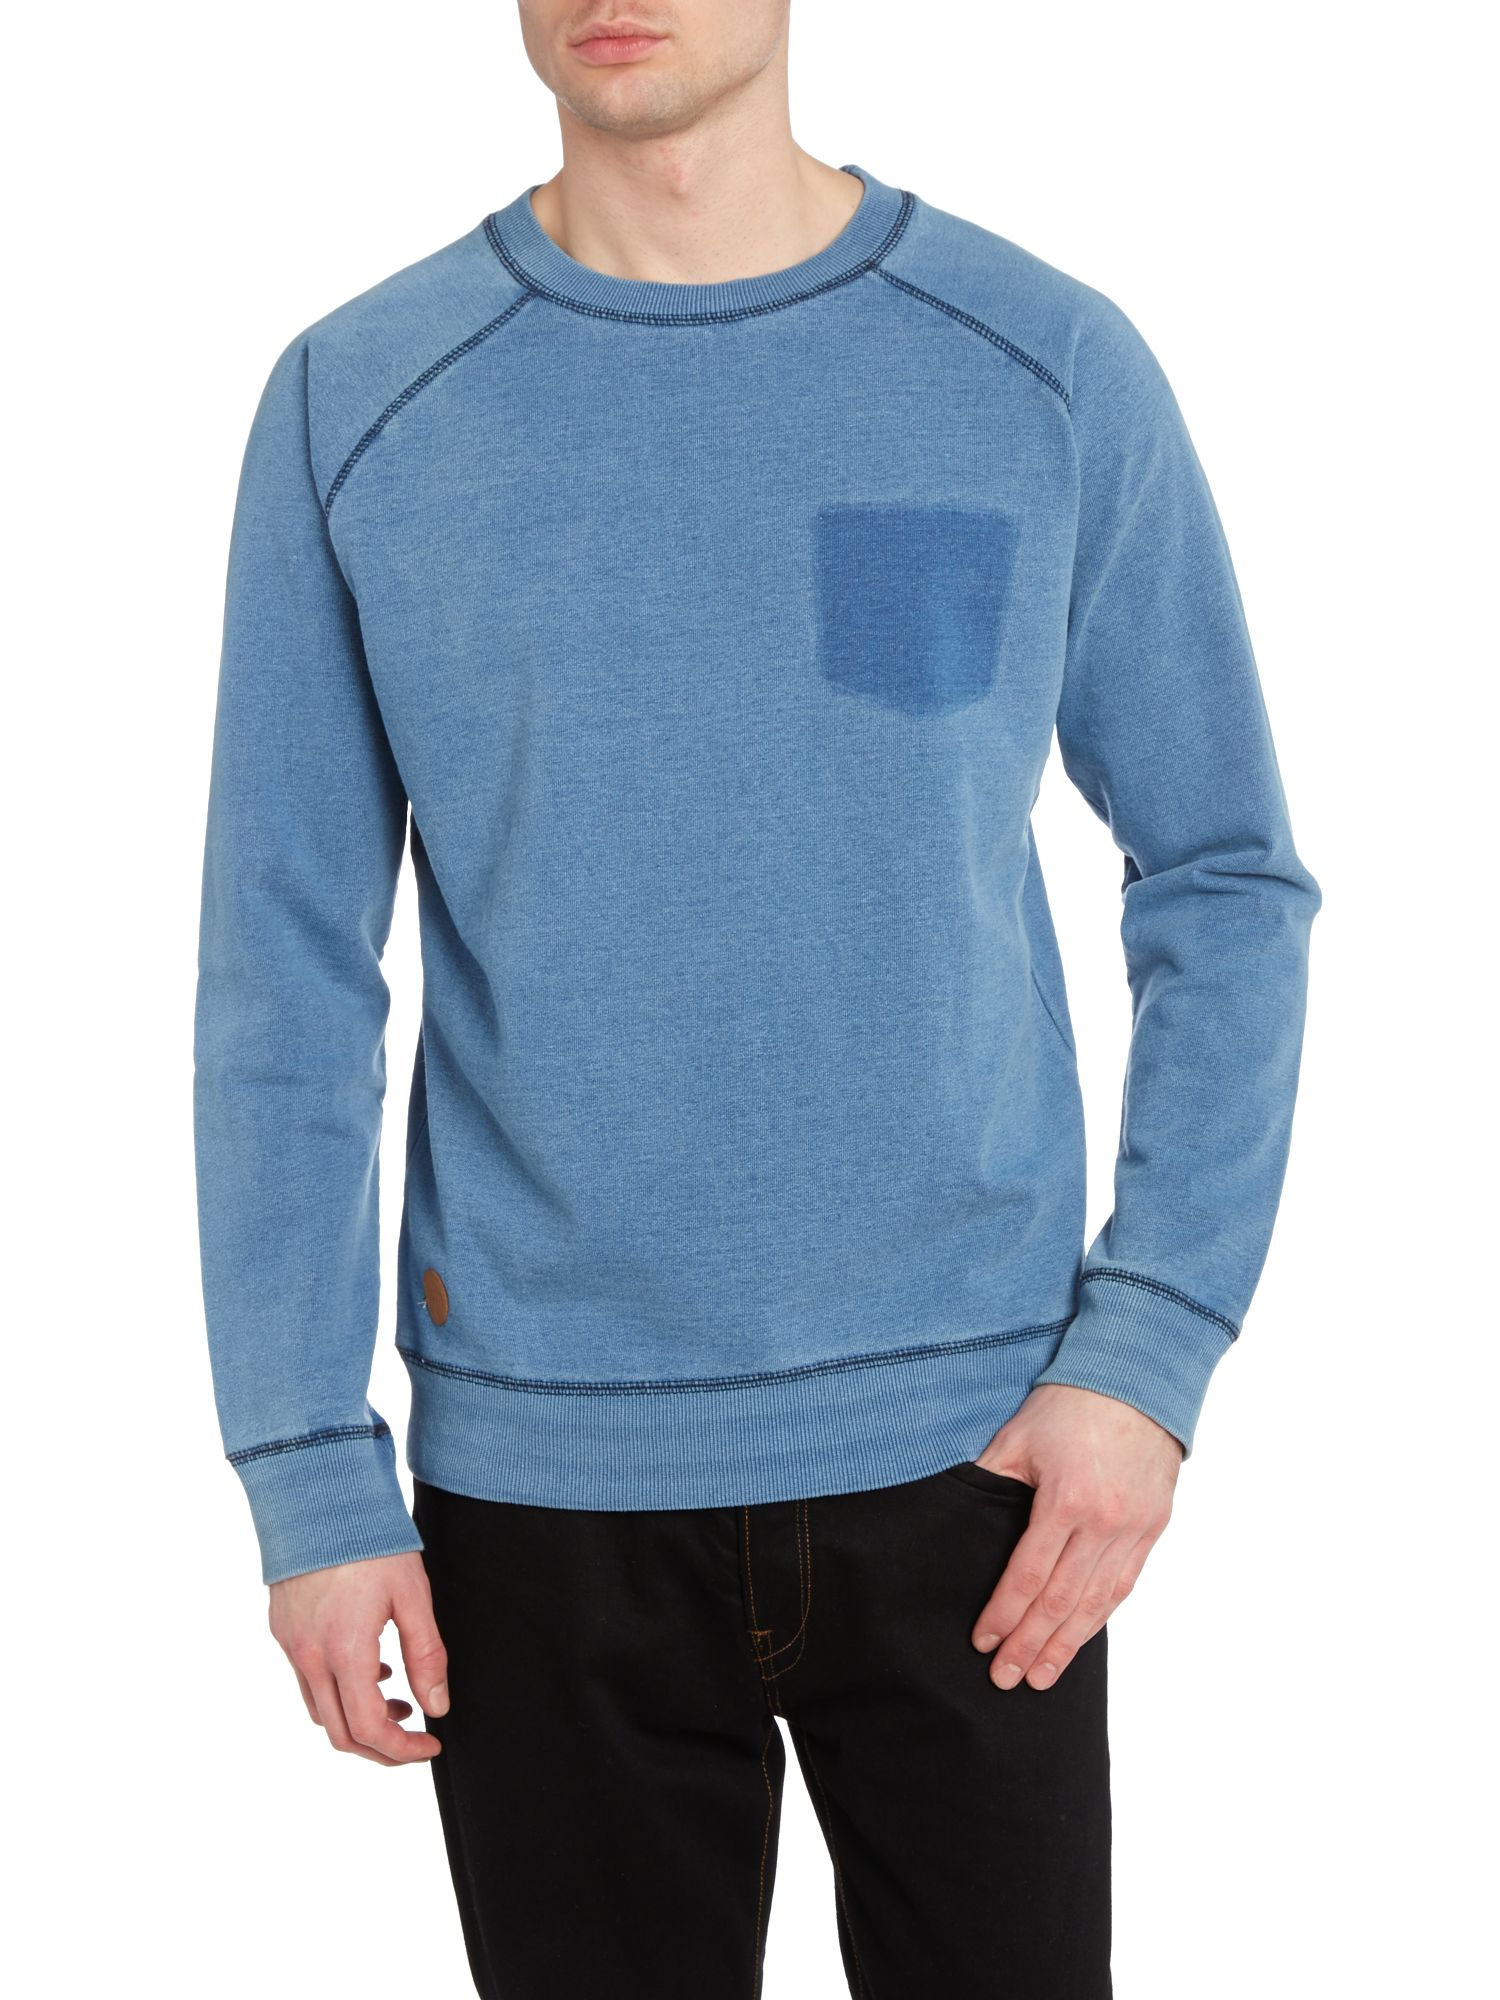 Crew neck ghost pocket sweatshirt